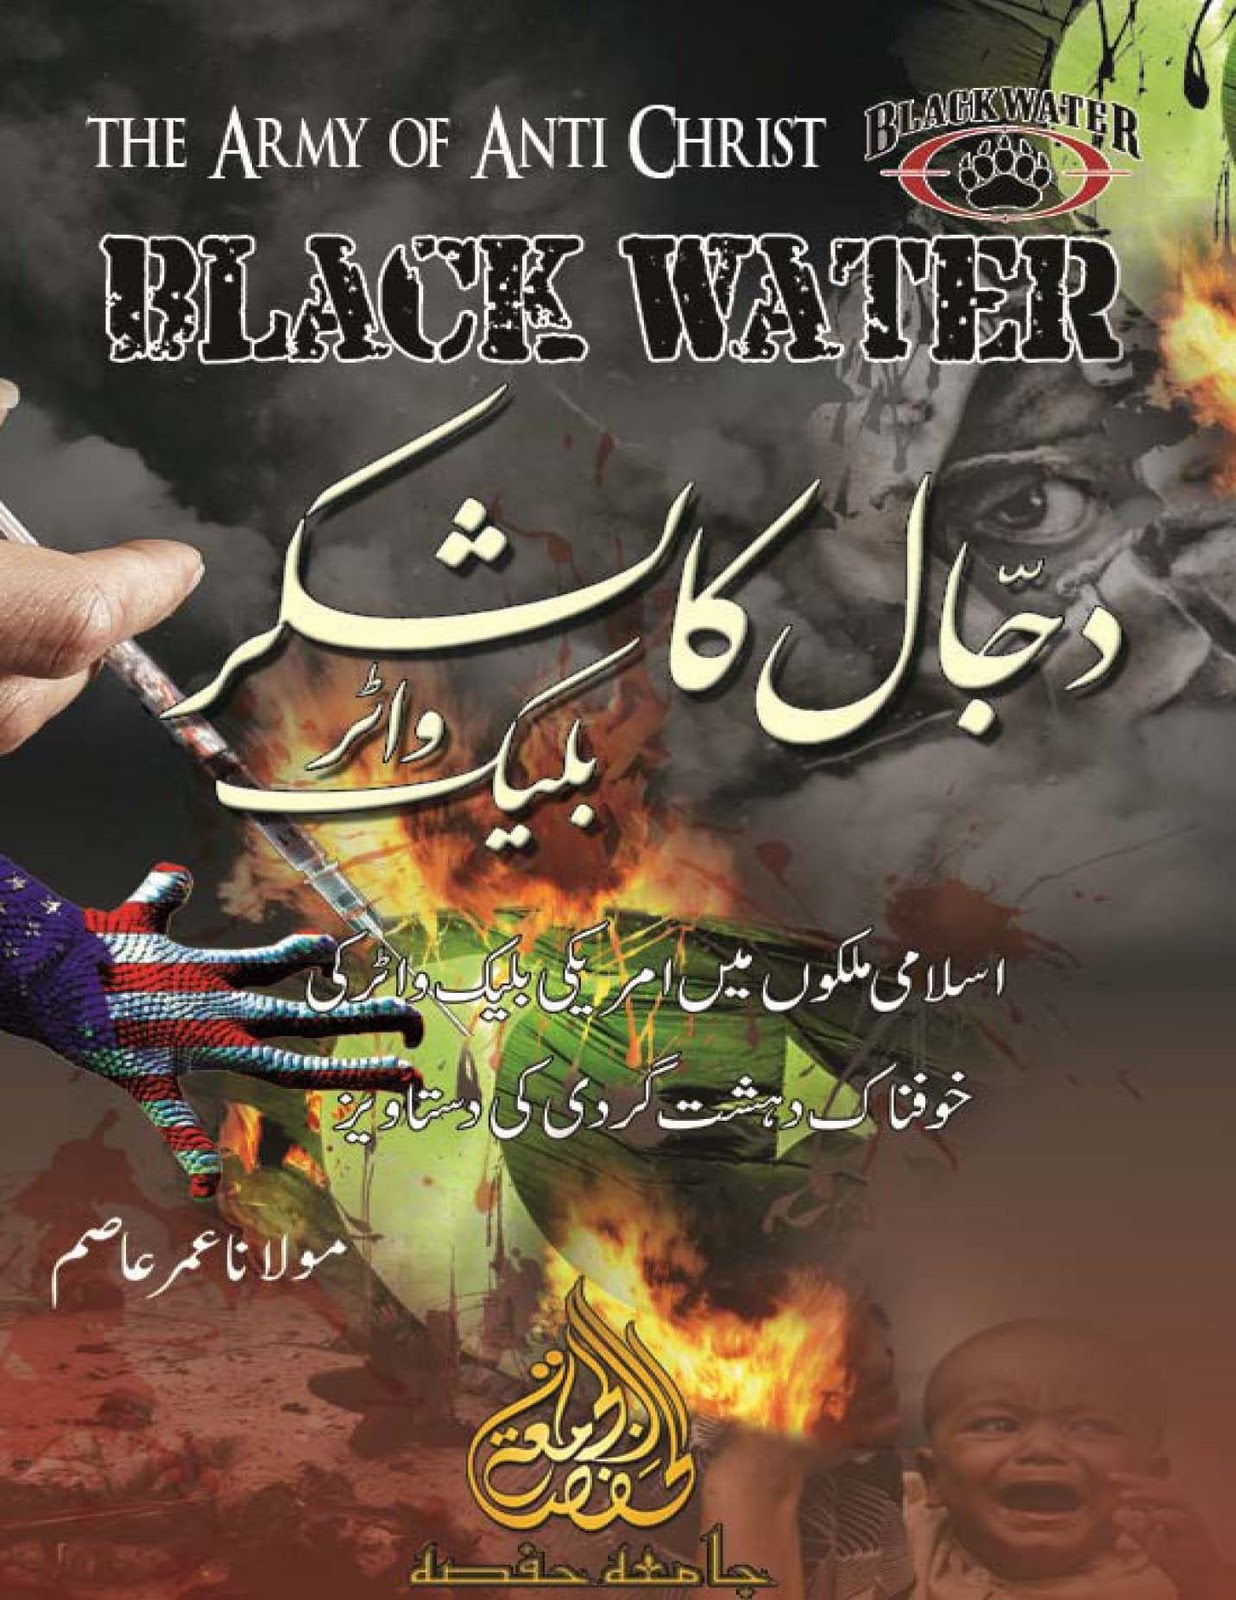 blackwater in pakistan Kurt nimmo infowars november 15, 2009 newspapers in pakistan have accused the united states of using blackwater and other agencies to conduct bombings and targeted assassinations in the country, according to memri translations.